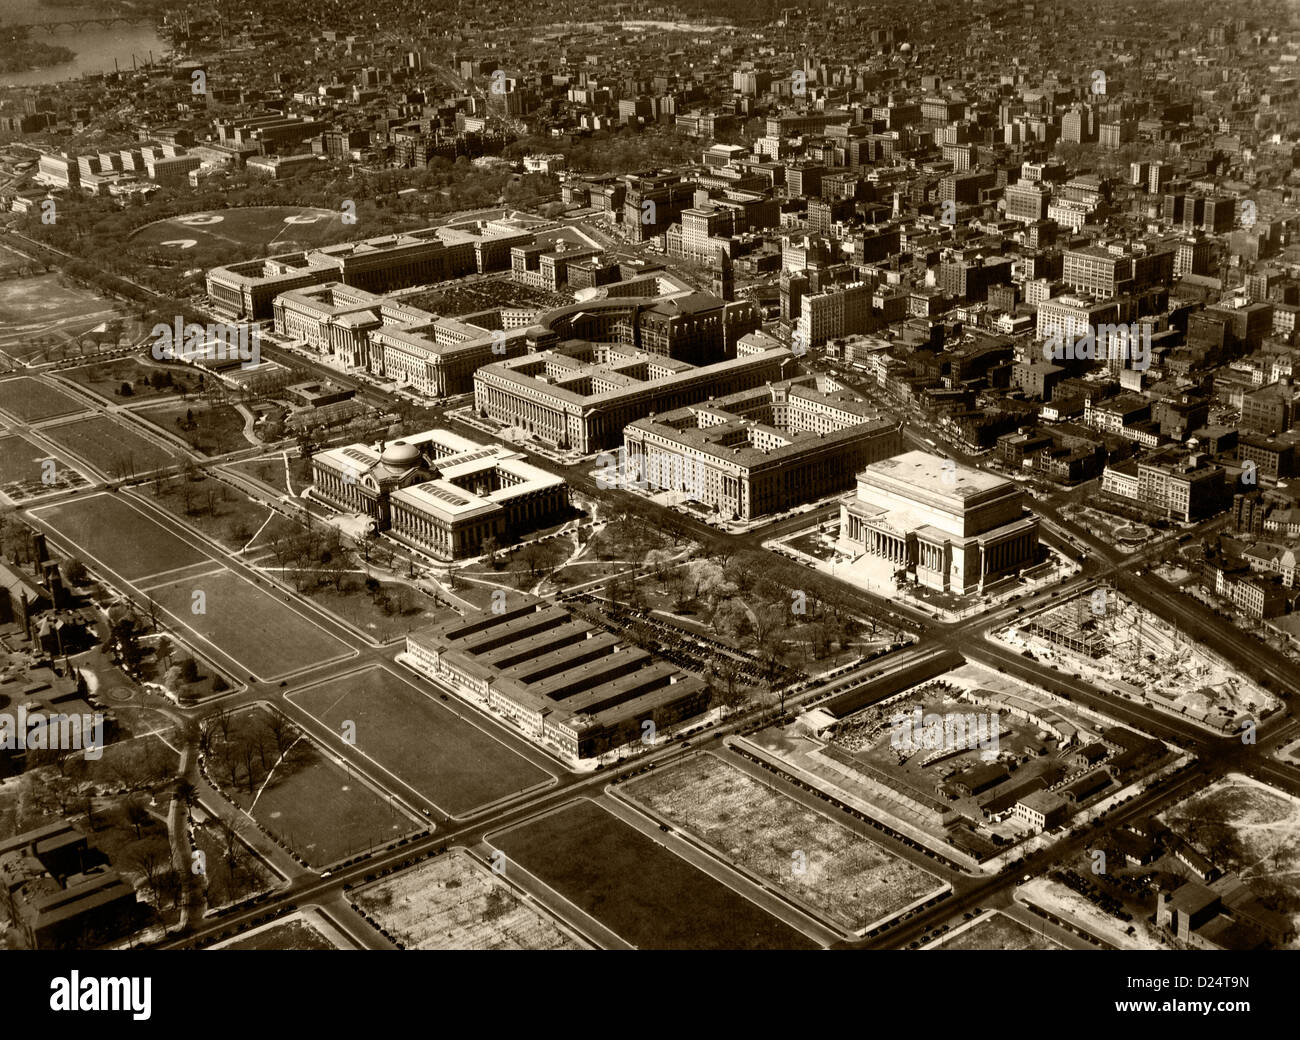 historical aerial photograph Federal Triangle, Washington, DC, 1937 - Stock Image